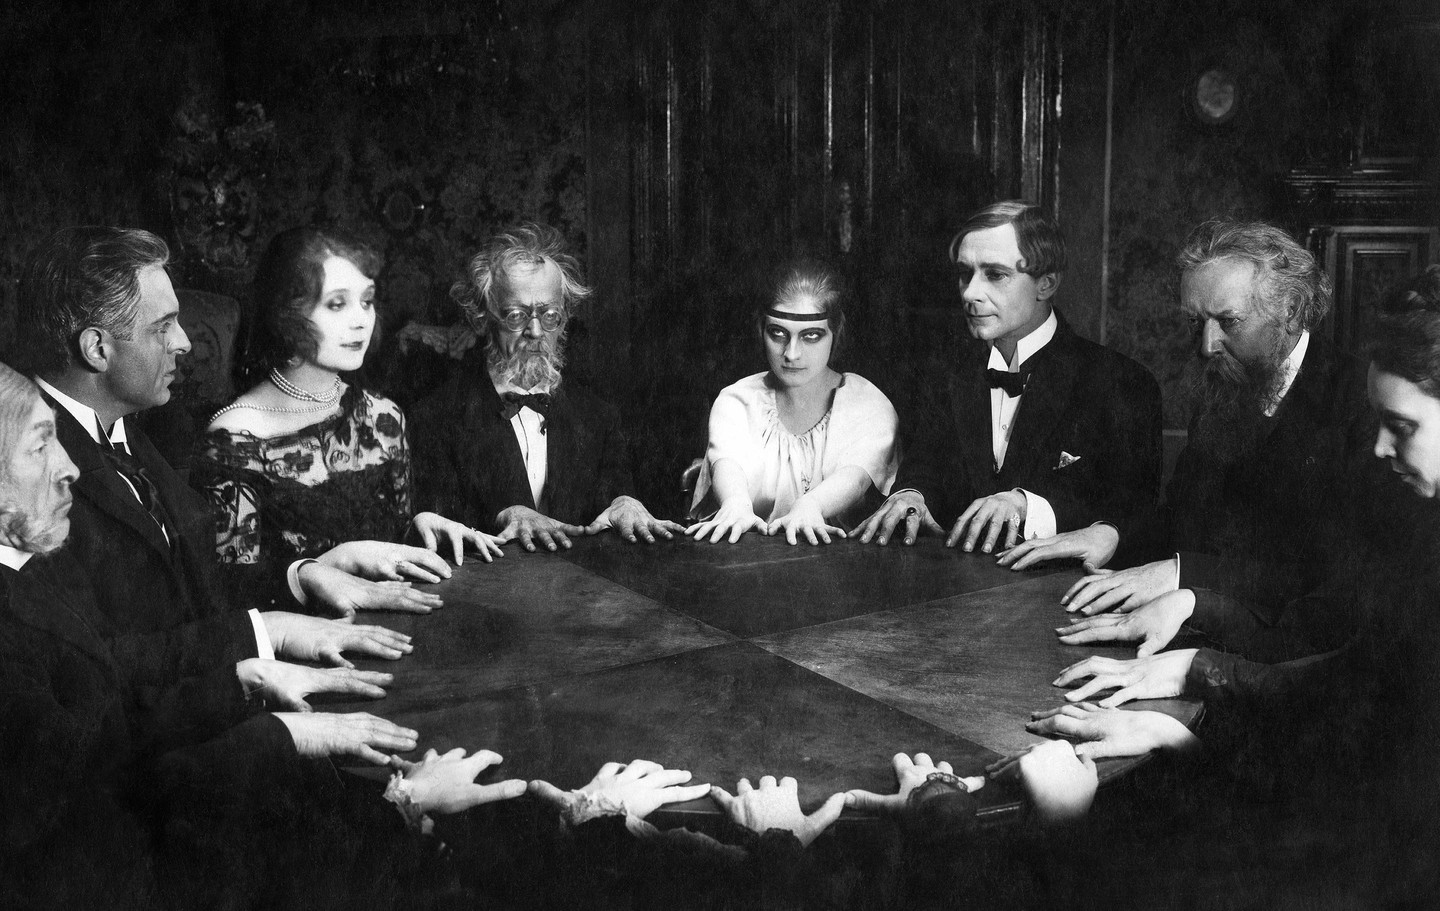 A traditional Victorian seance